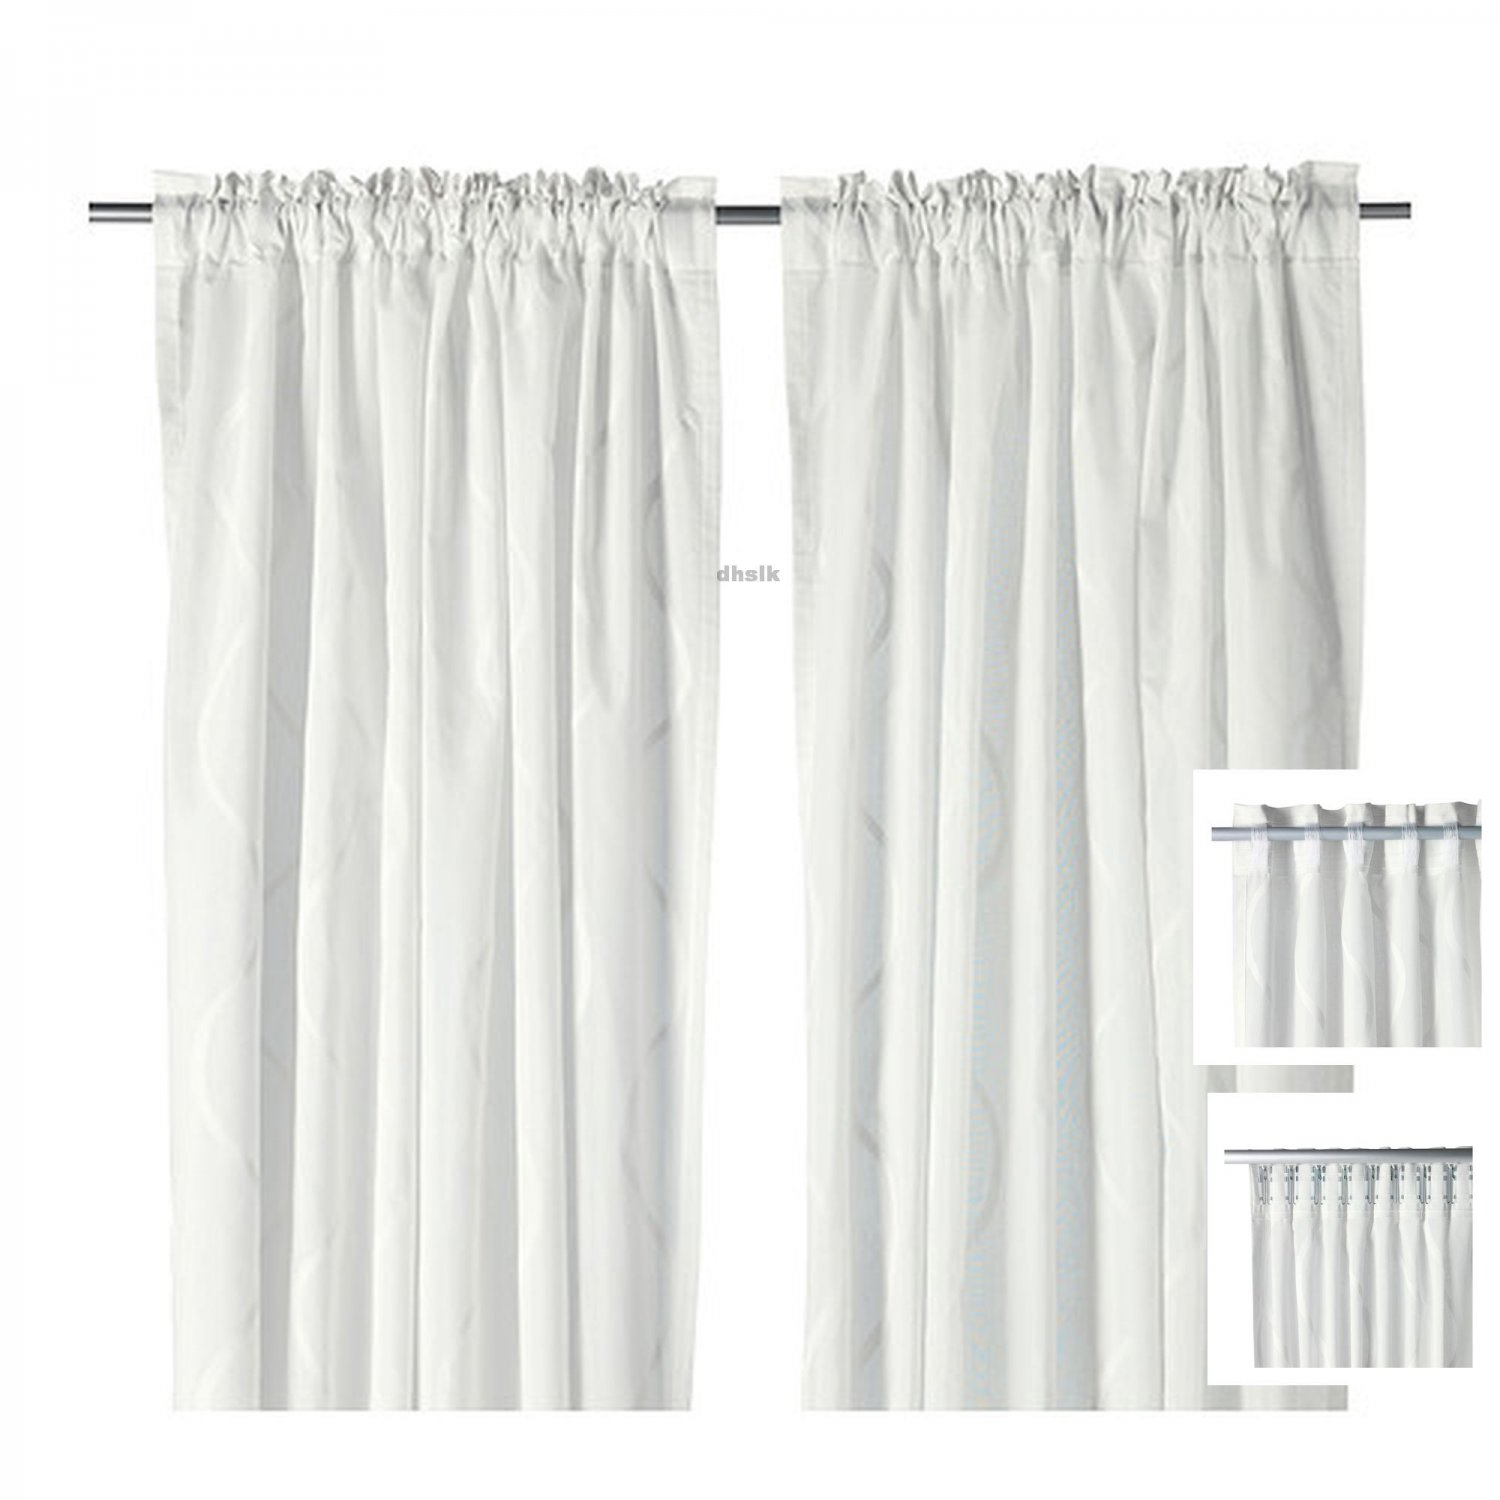 Ikea hillmari curtains drapes white - Cortinas de ninos ikea ...